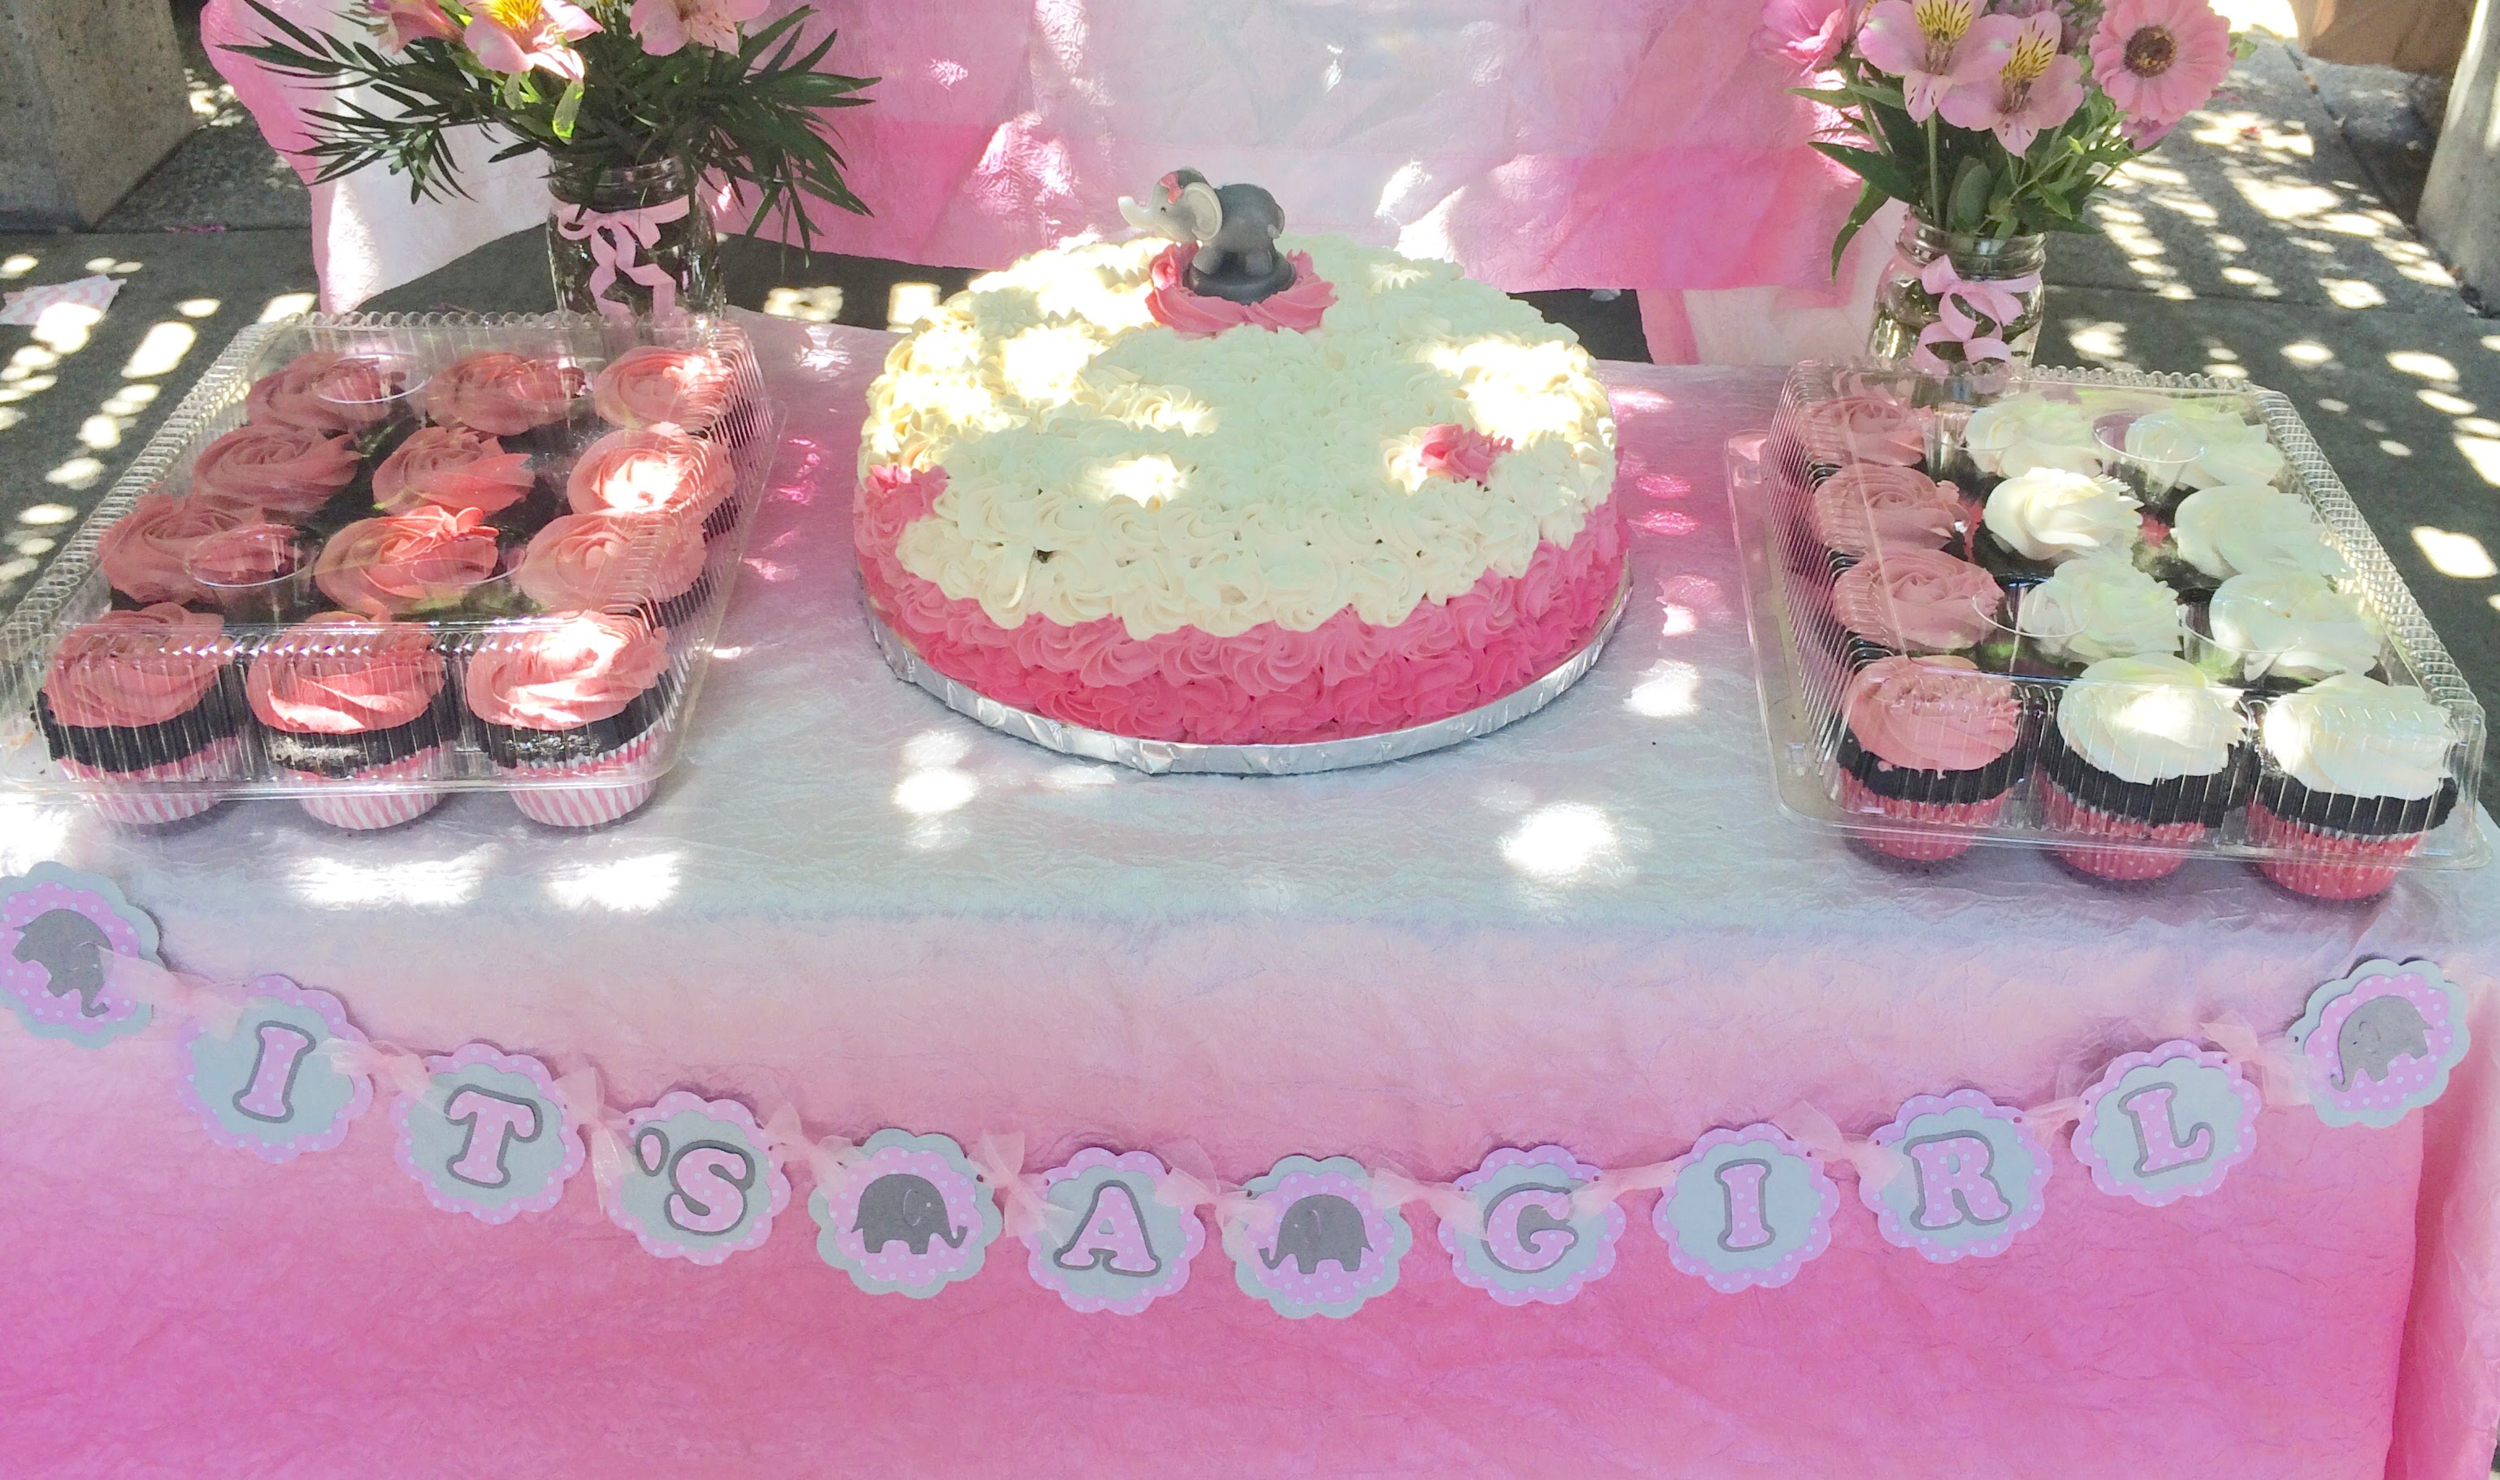 tres leches baby shower.png